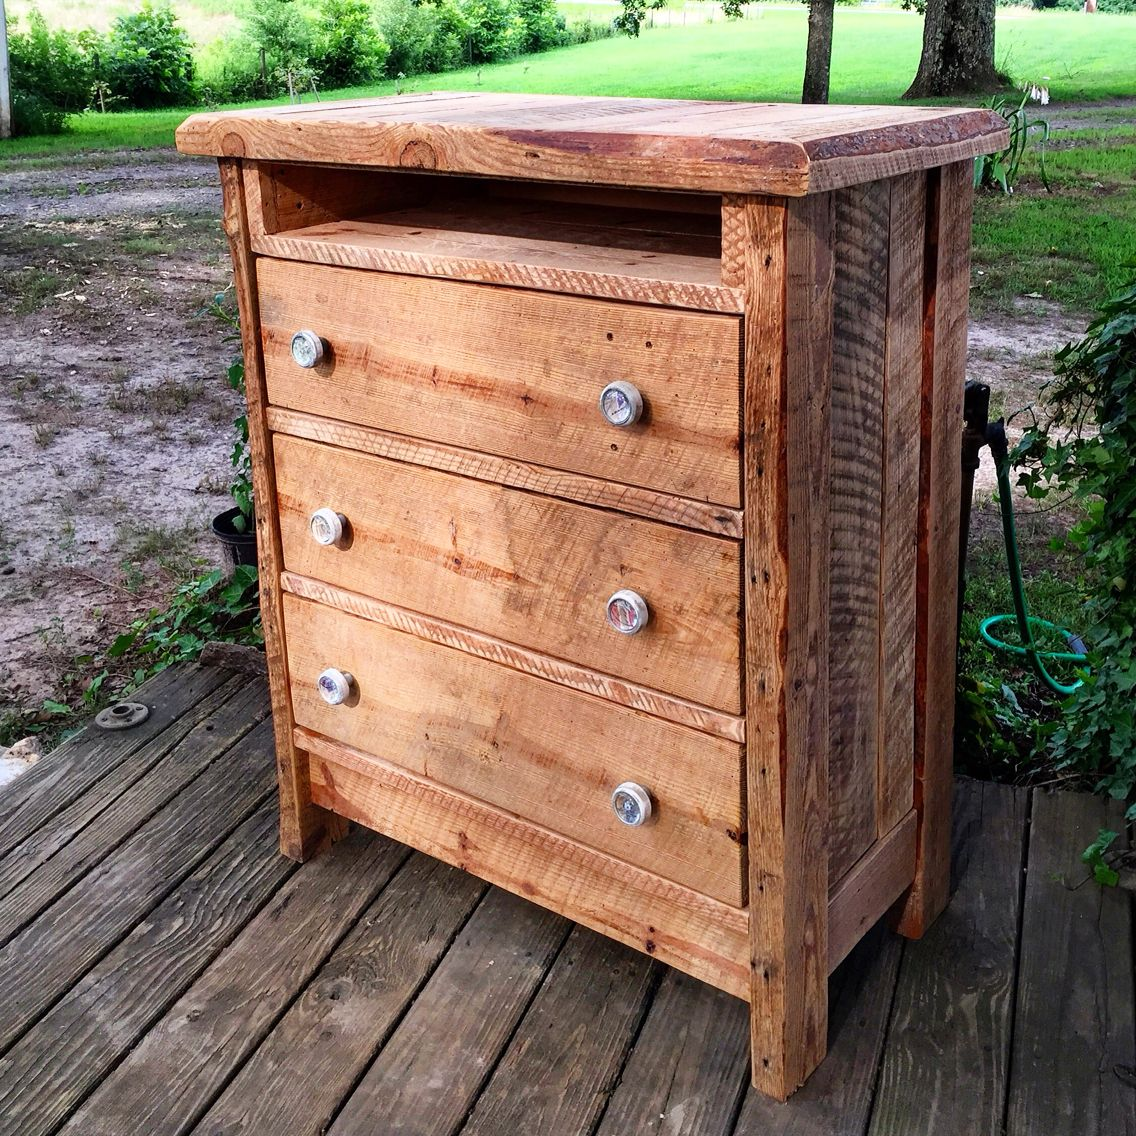 Barnwood Dresser I Built Repurposed The Wood From A Remodeling Project I Did On My 1938 Farm House Dresser Plans Repurposed Home Projects